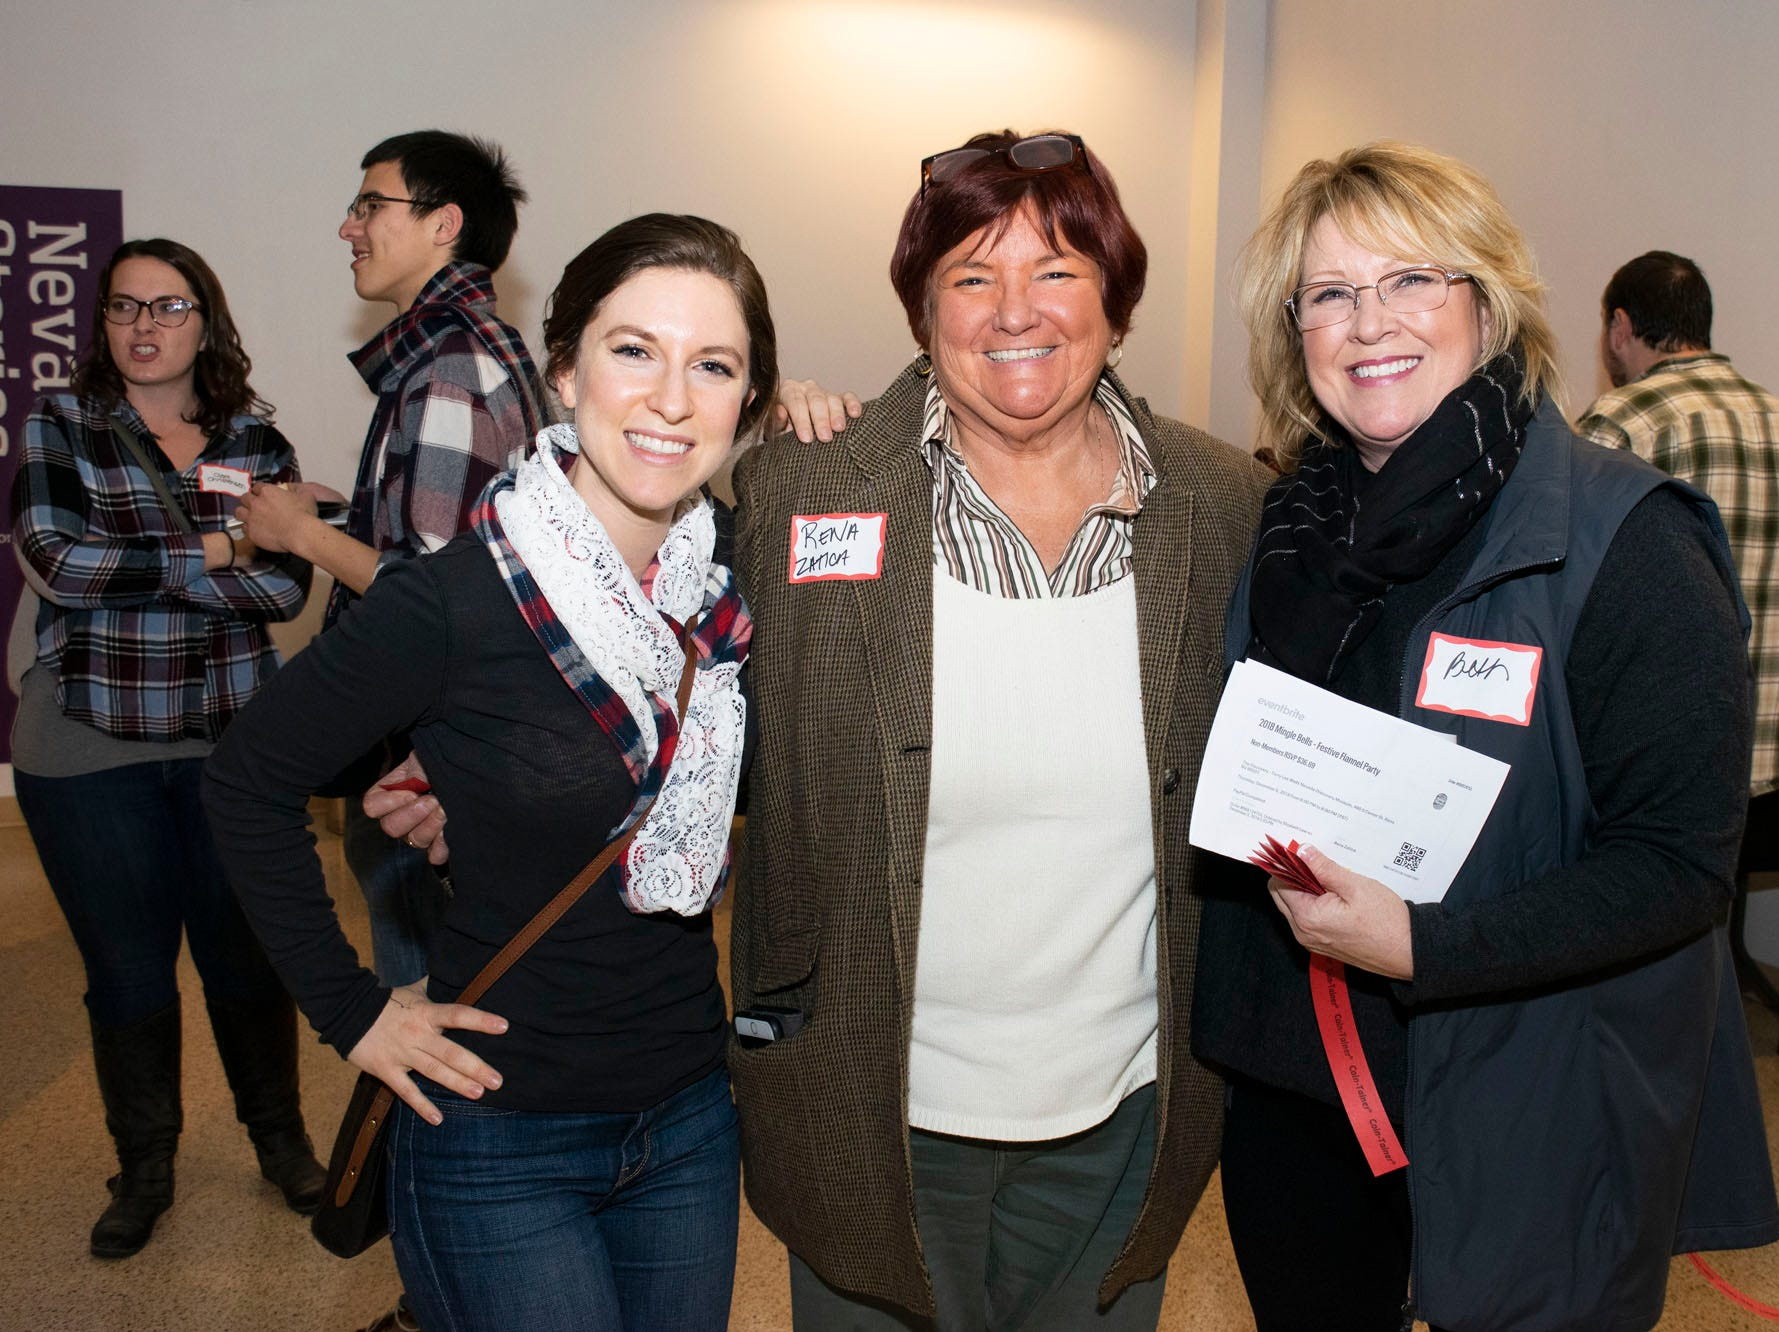 Nicole Dion, Rena Zatica, and Beth Law attend Mingle Bells 2018 at the Discovery Museum on Thursday, Dec. 6, 2018. Reno, Nev.